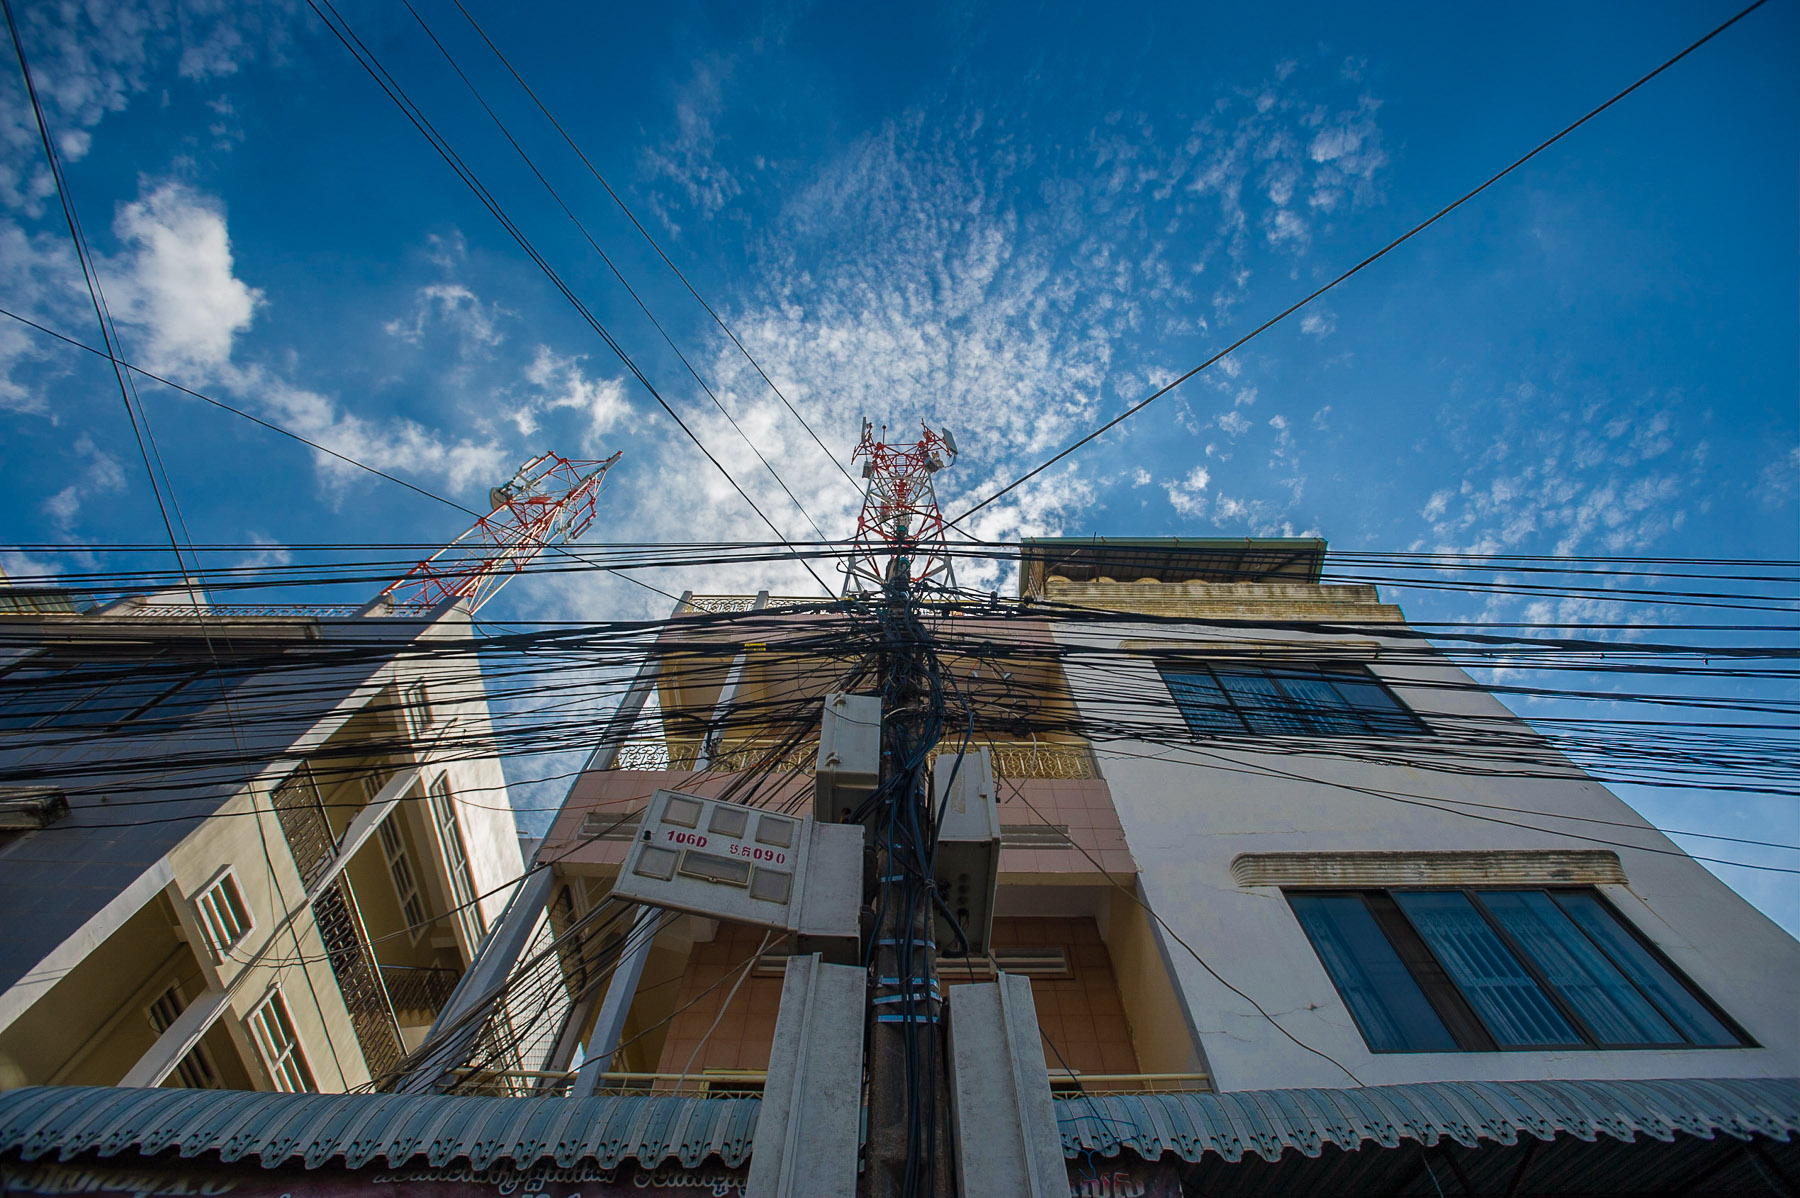 Clustered powerlines on electric pole, Phnom Penh, Cambodia.